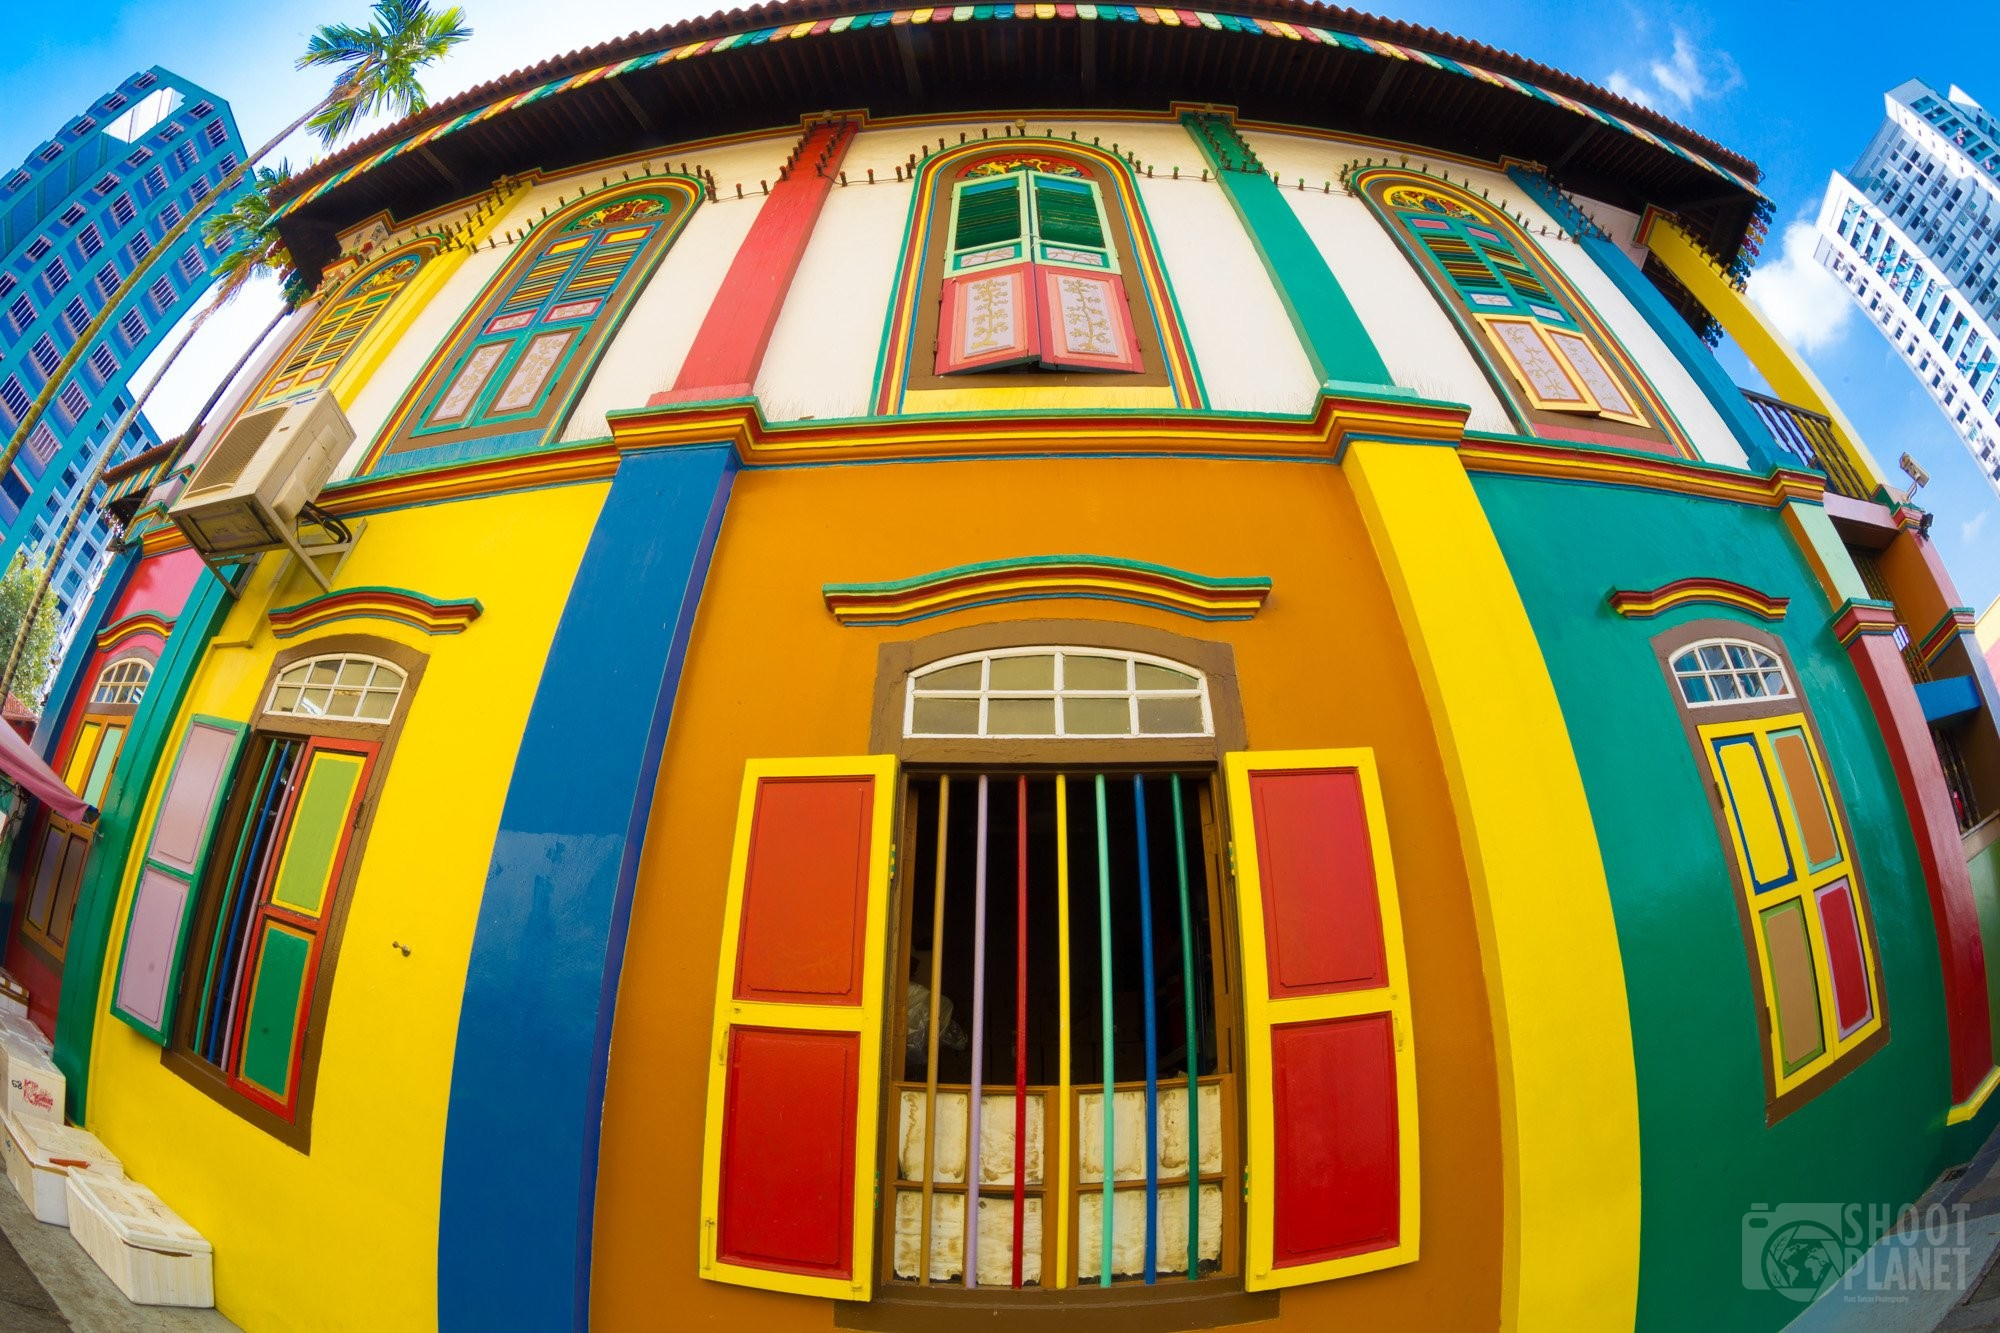 Colorful little India houses in Singapore